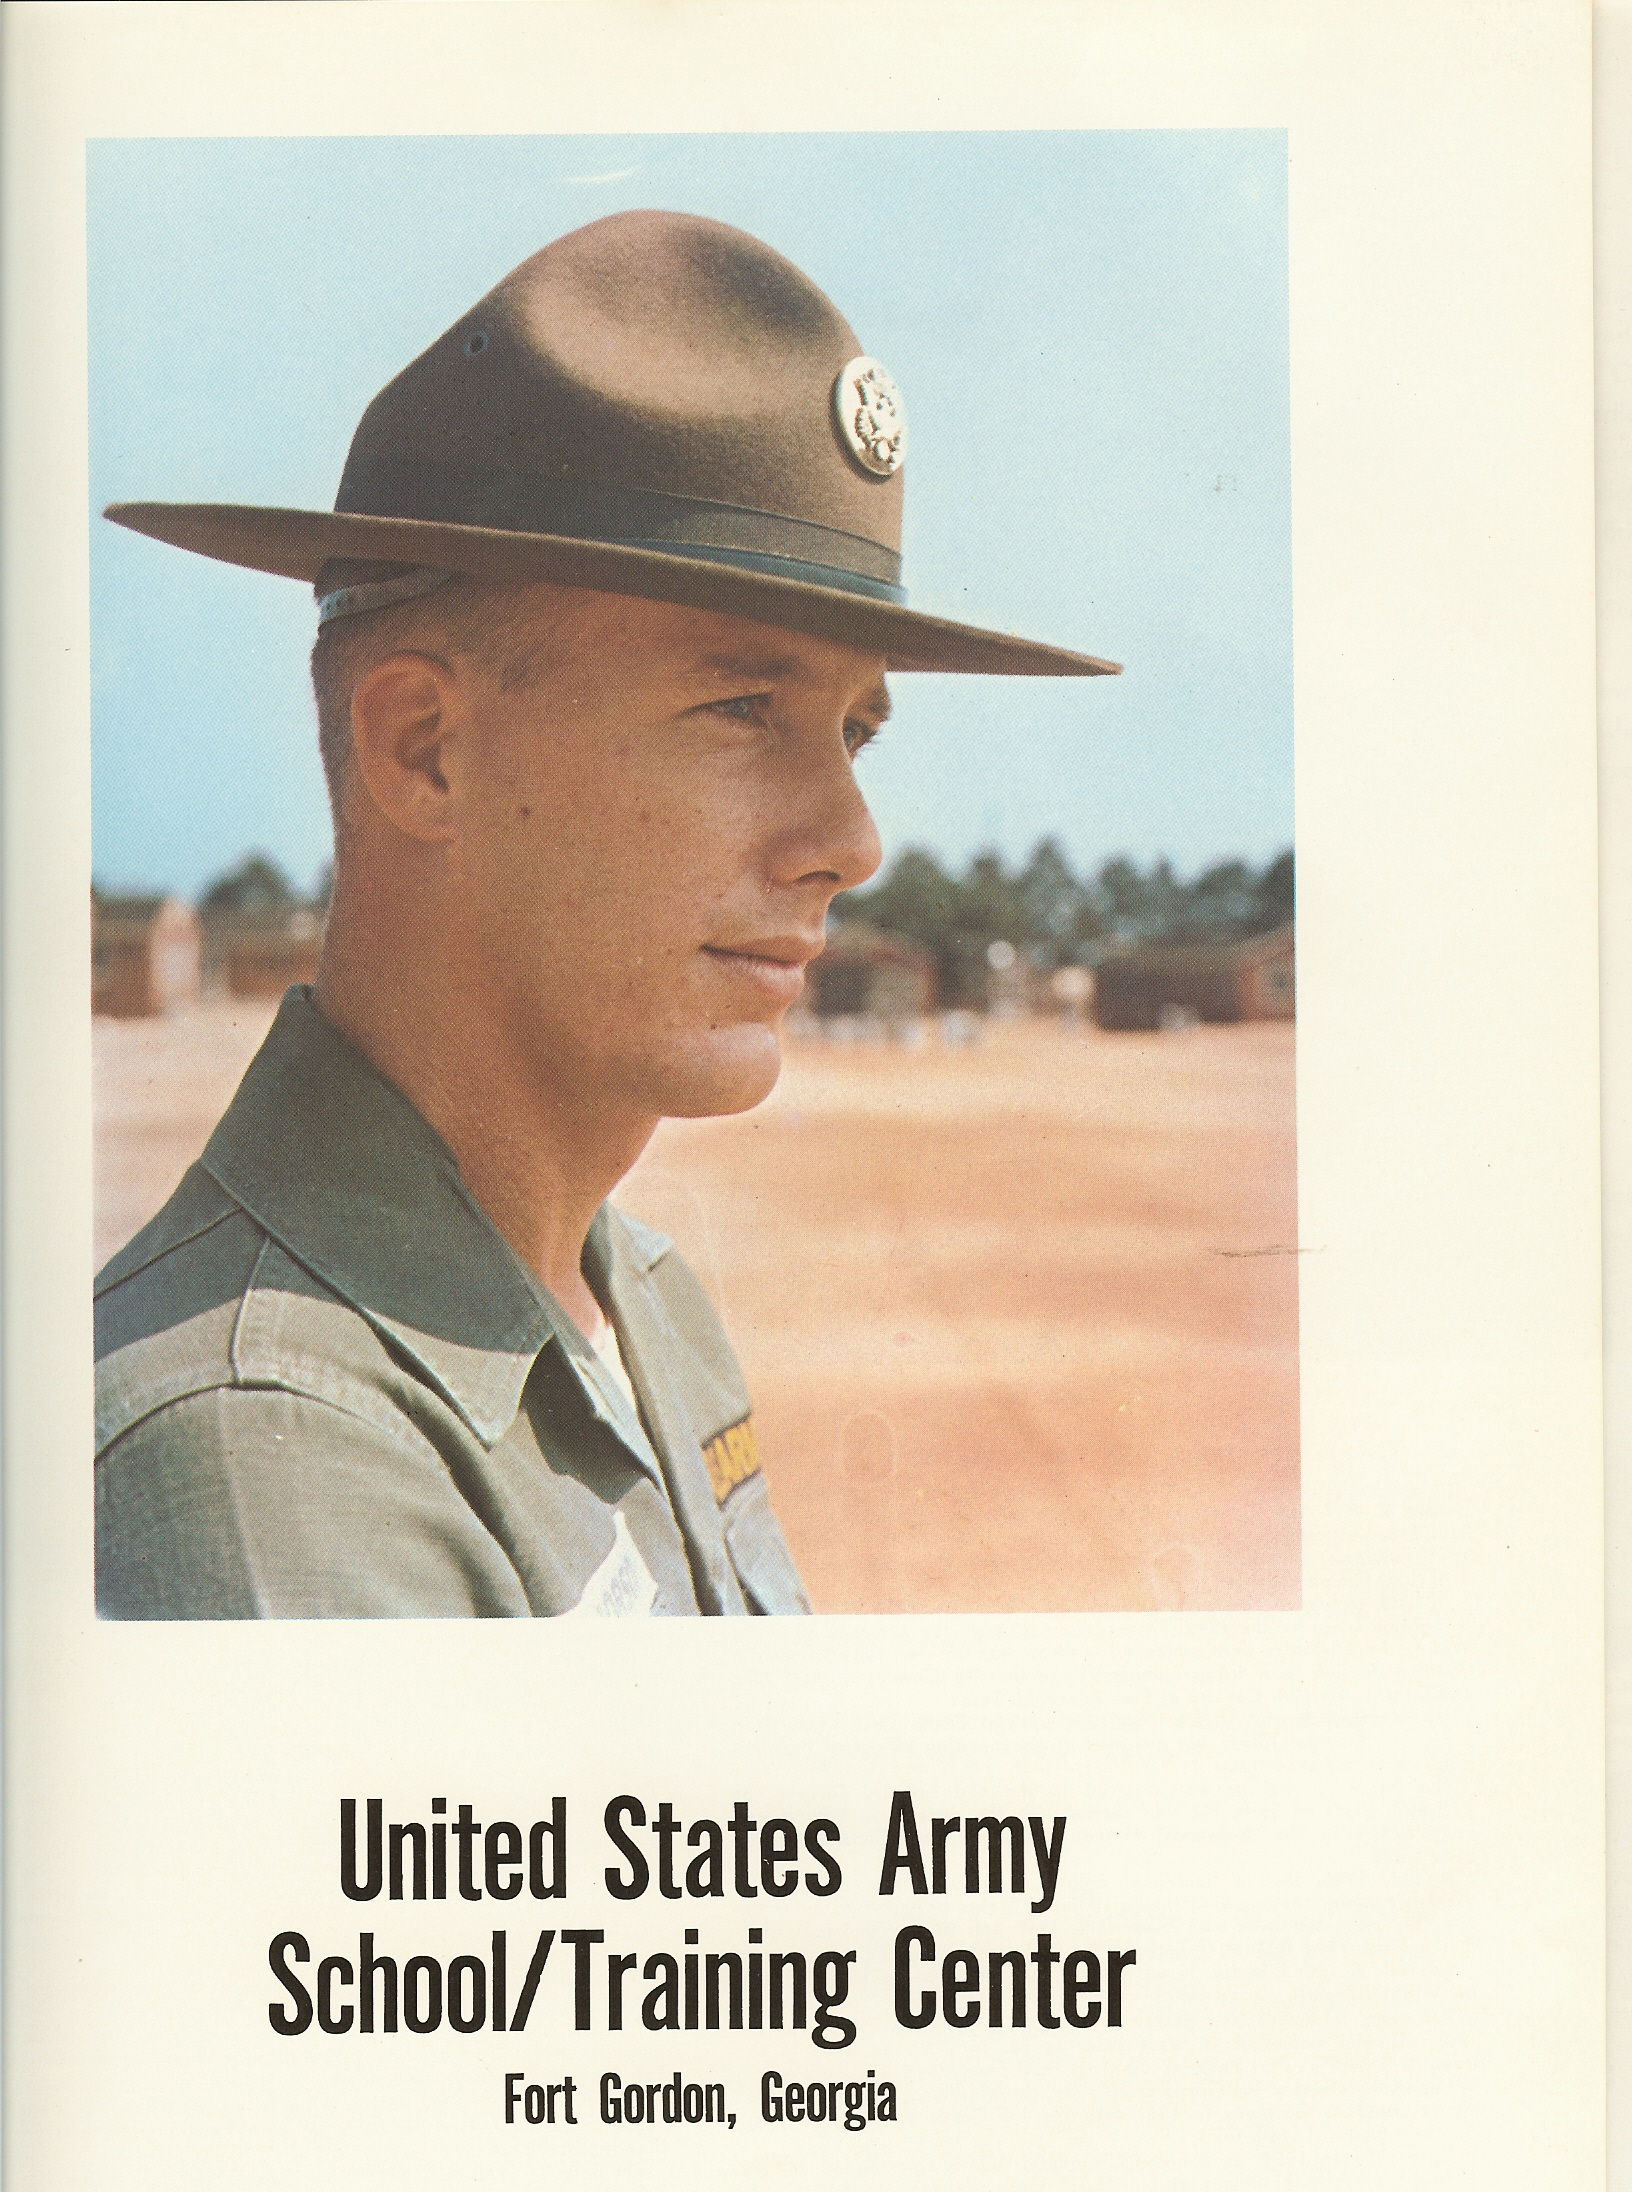 1969 basic training